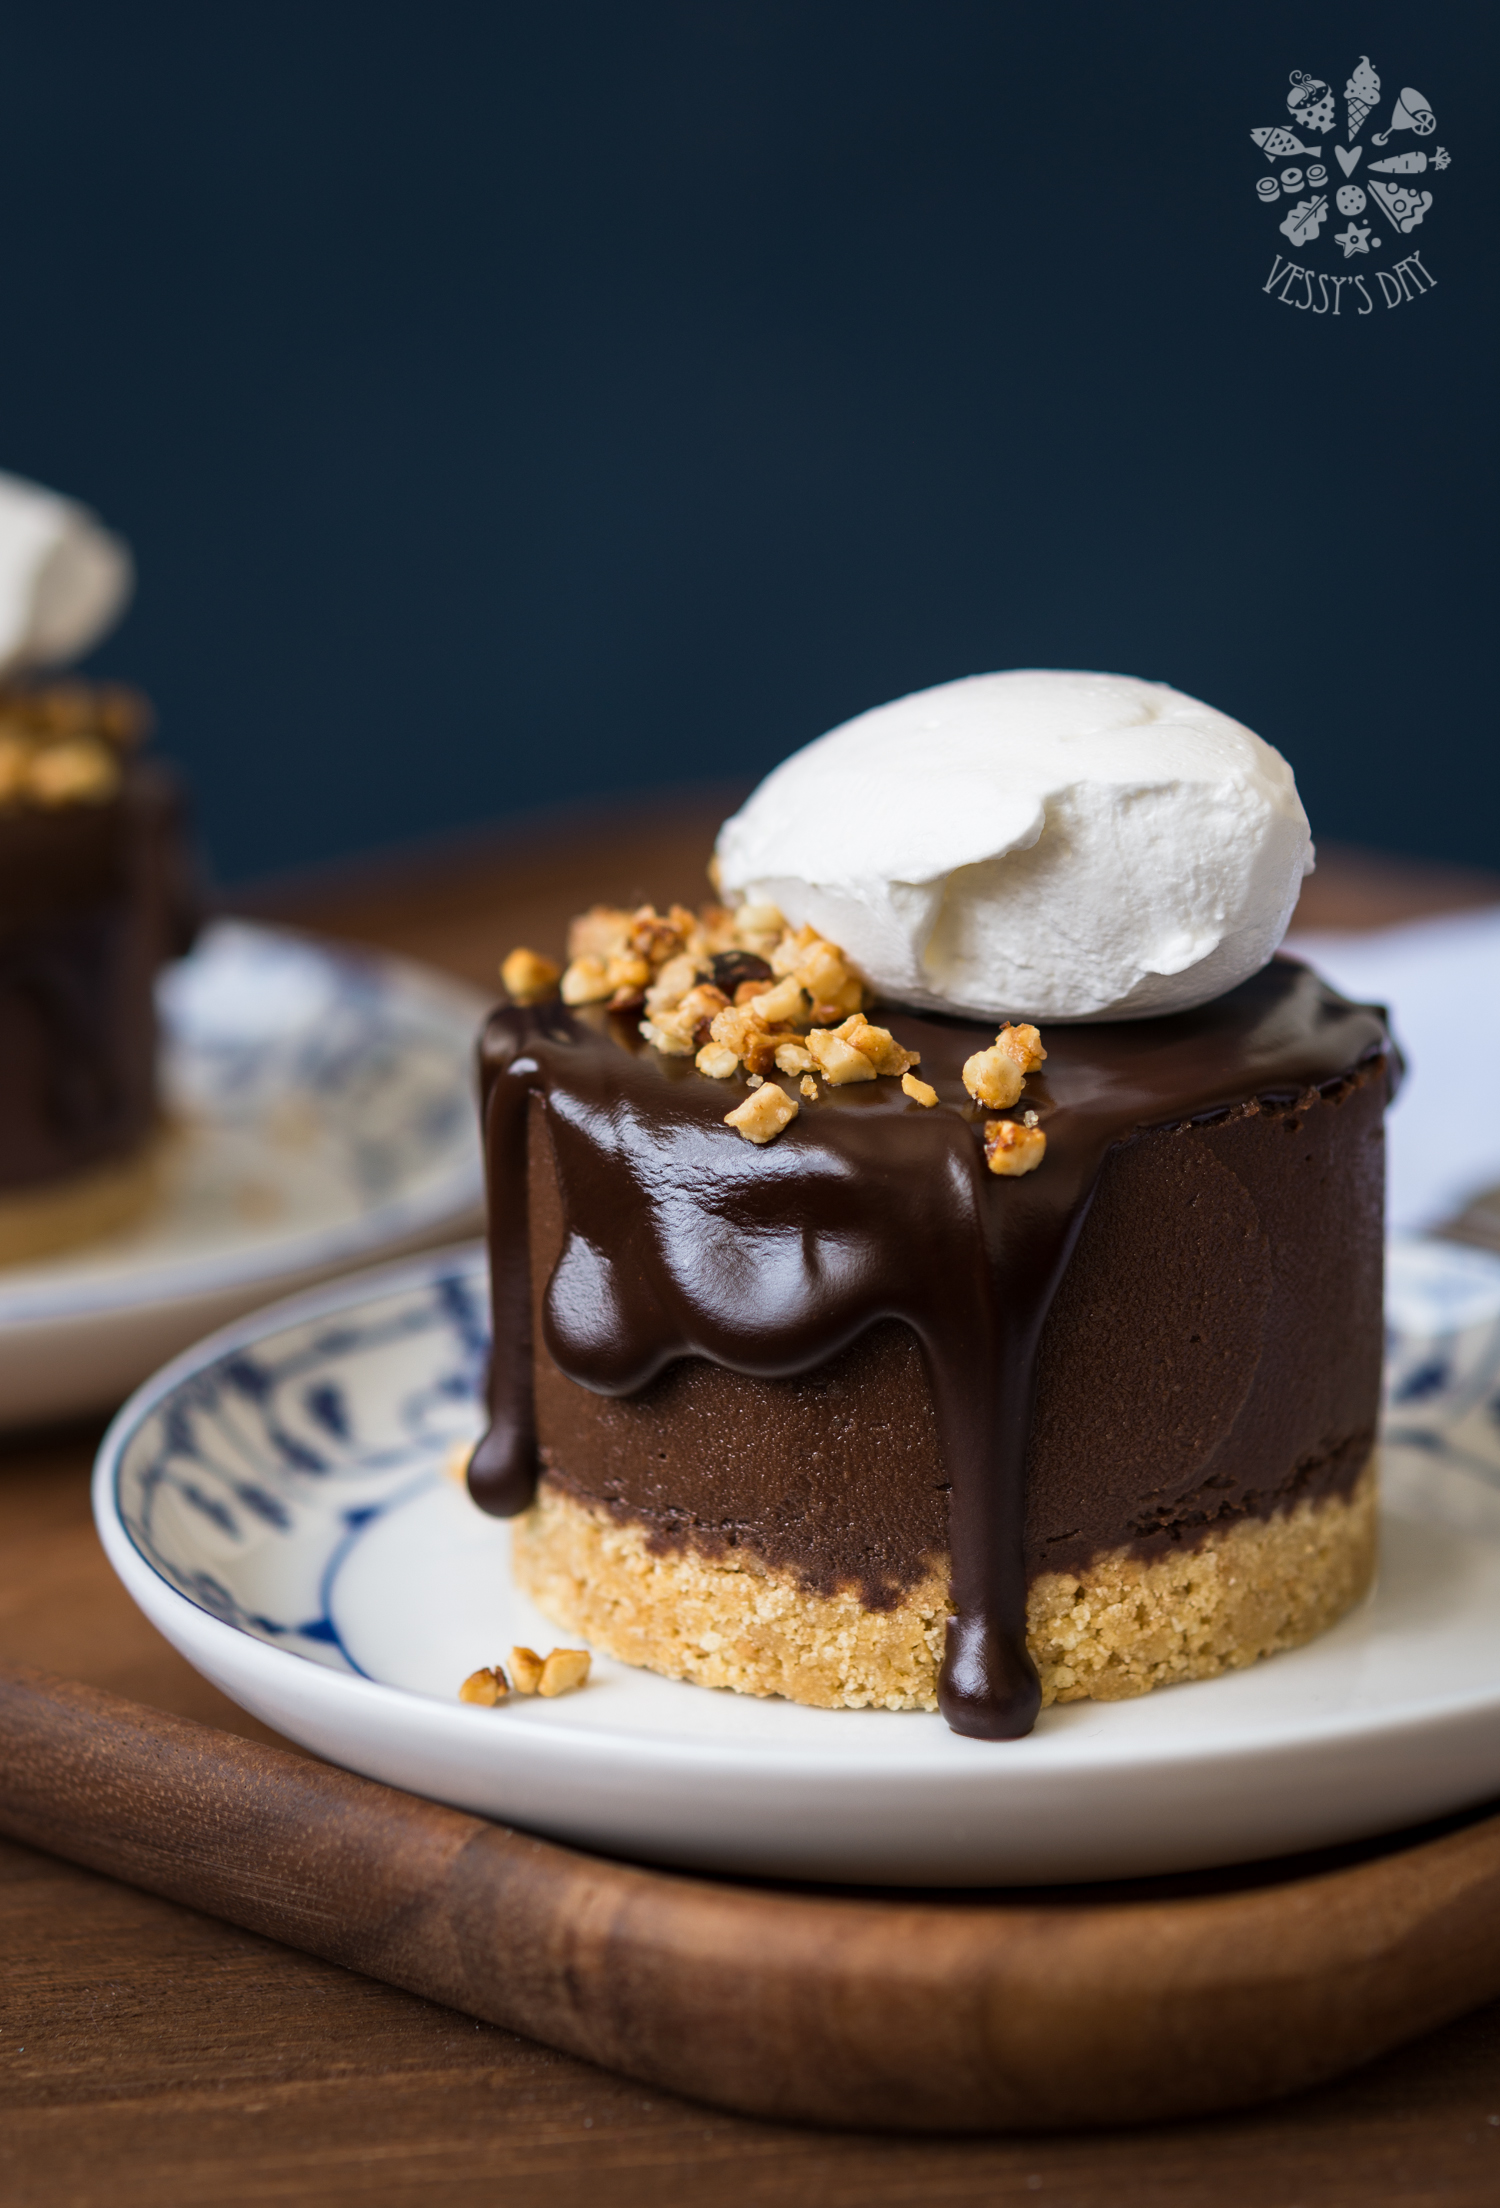 Double chocolate chestnut cakes | Vessy's day